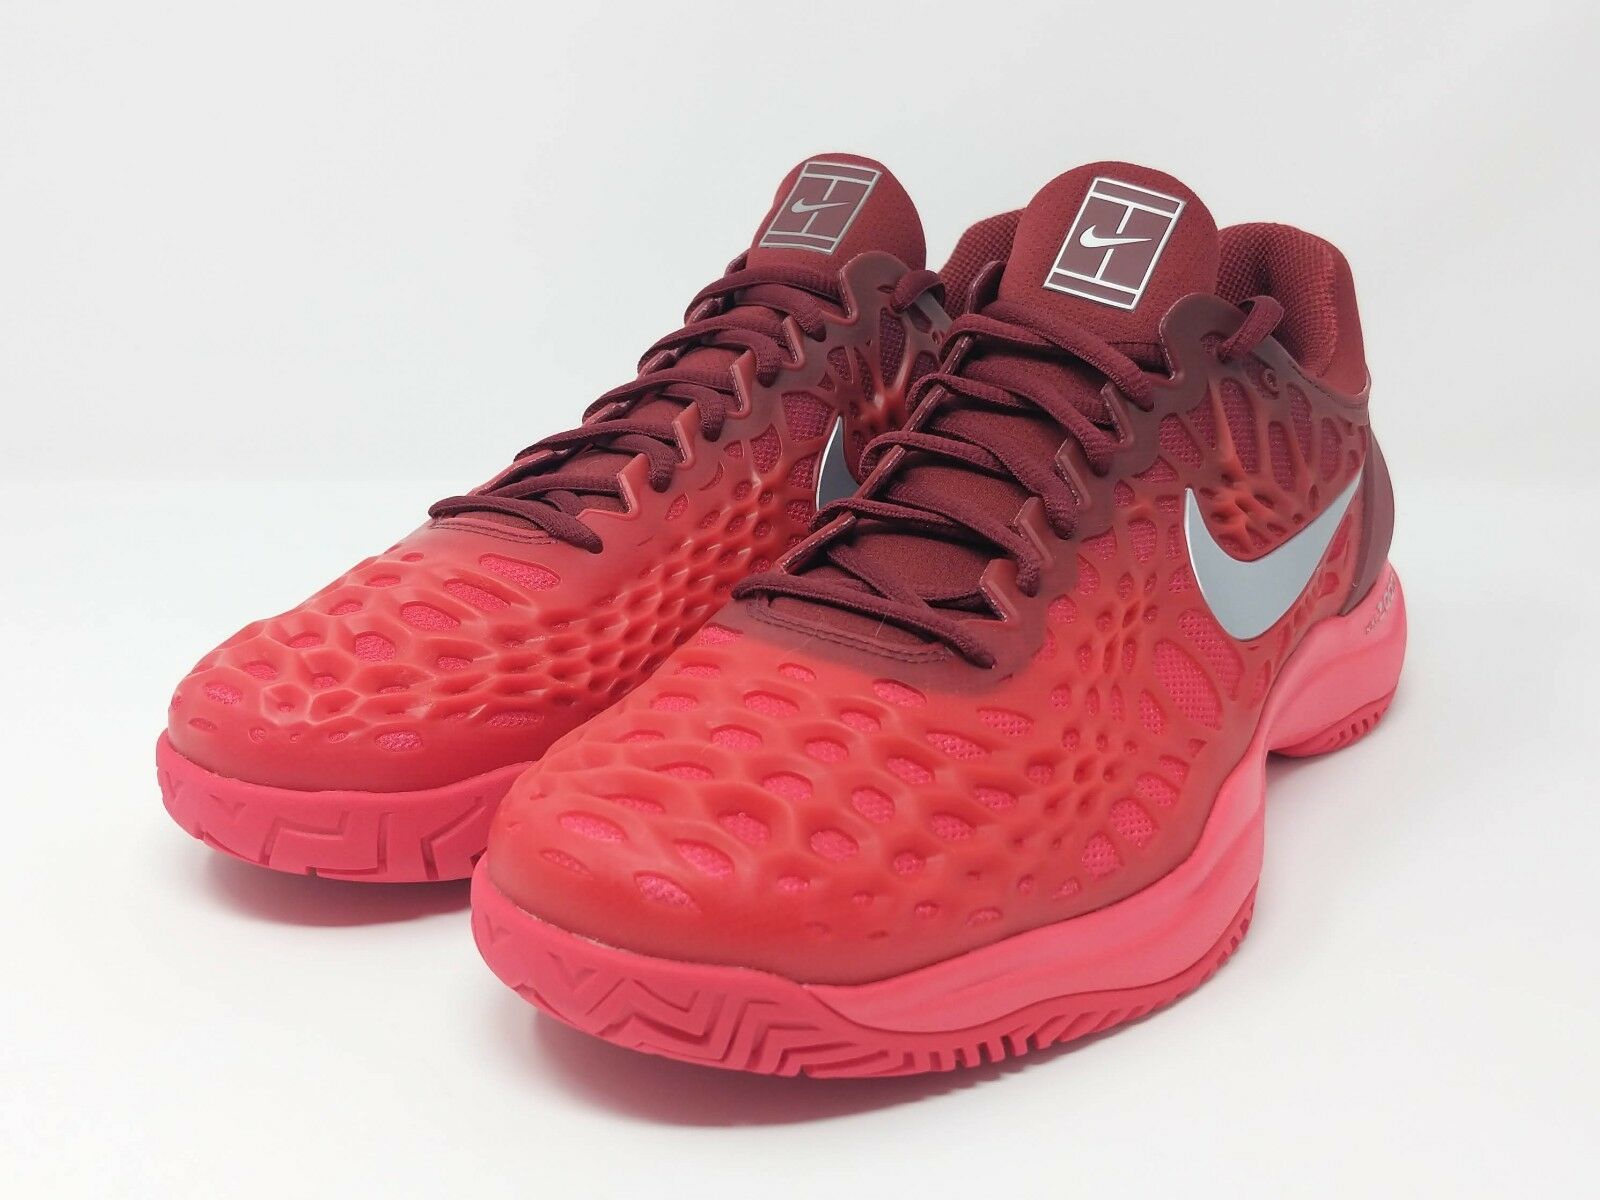 Nike Air Zoom Cage 3 HC Red/Metallic Silver Tennis Shoes 918193-602 Sz 11.5